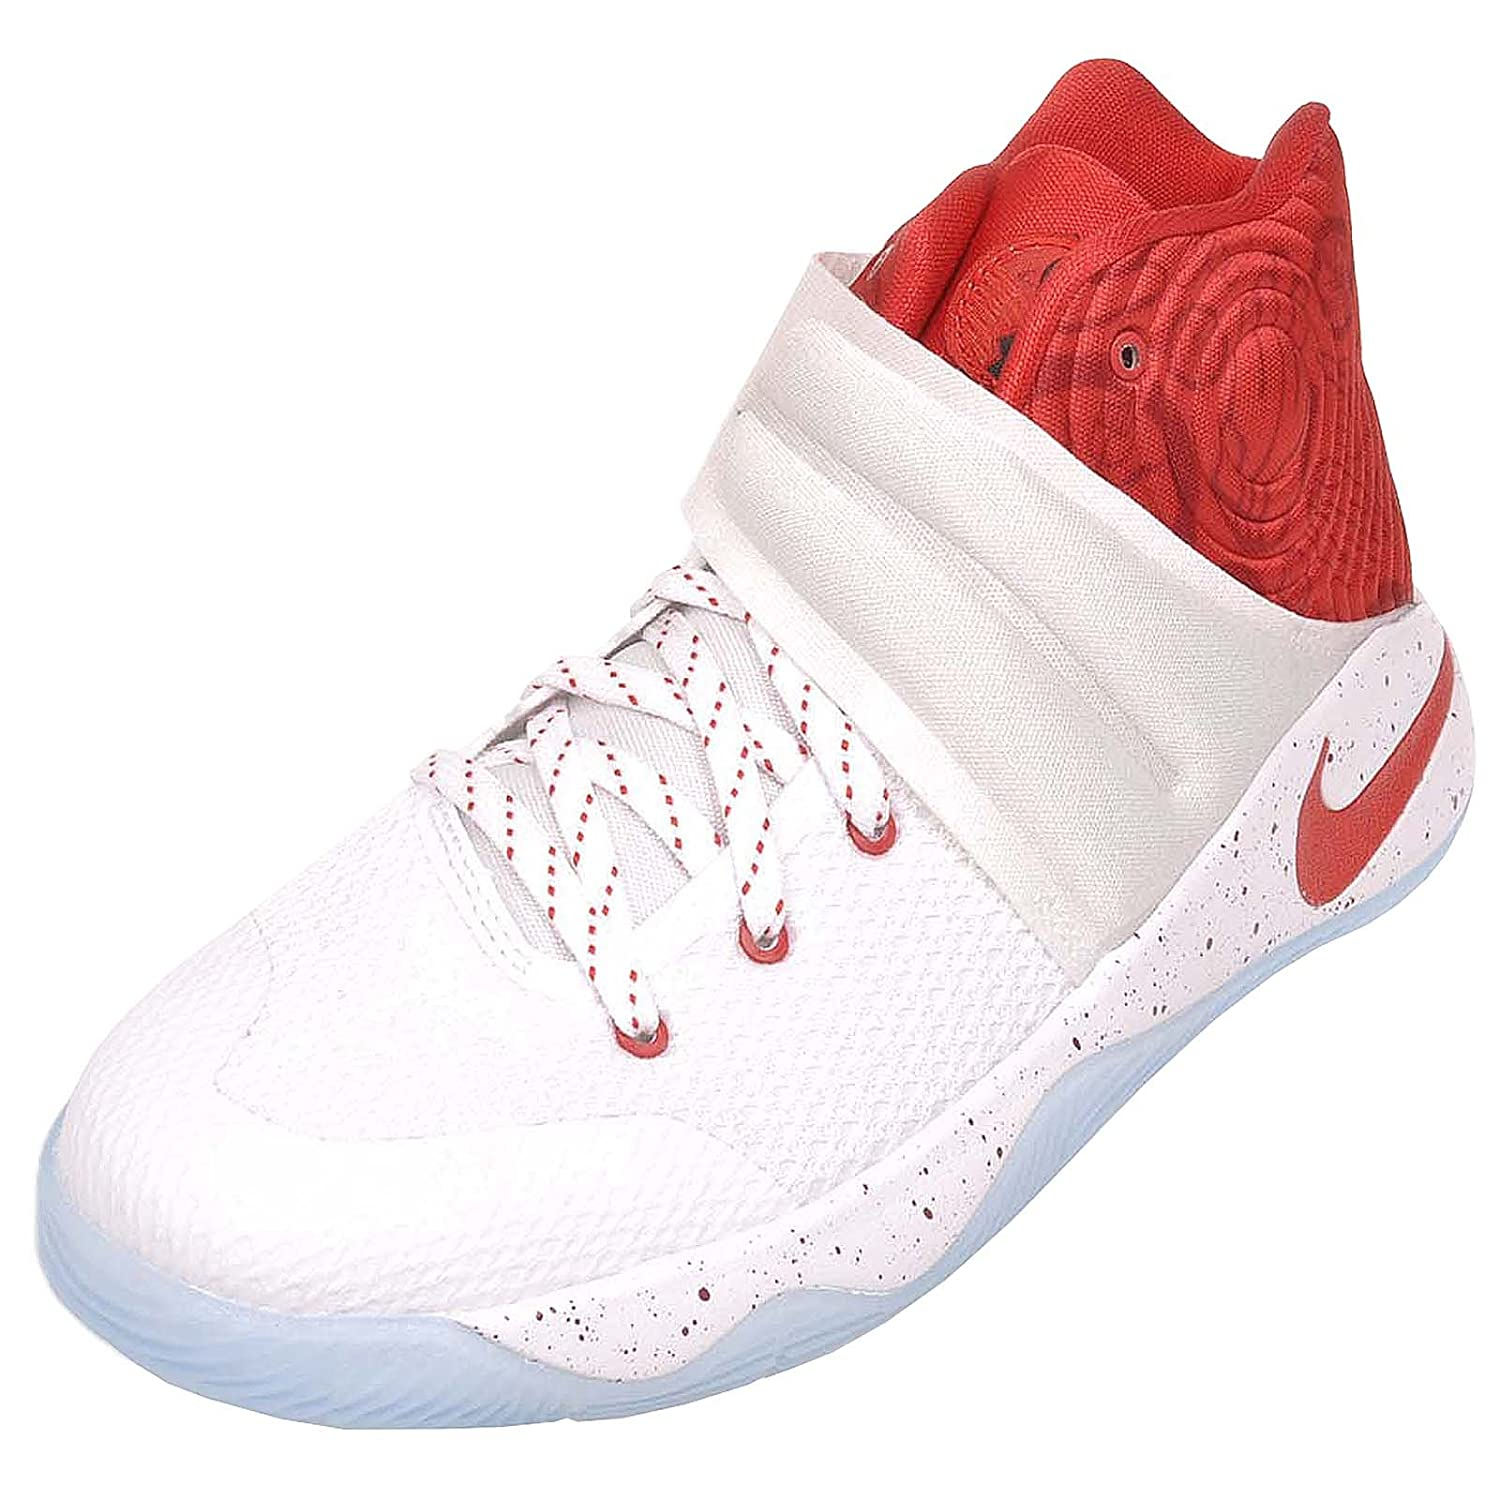 af3dfa37a0735 Nike Grade School Boy's Kyrie 2 Basketball Shoes